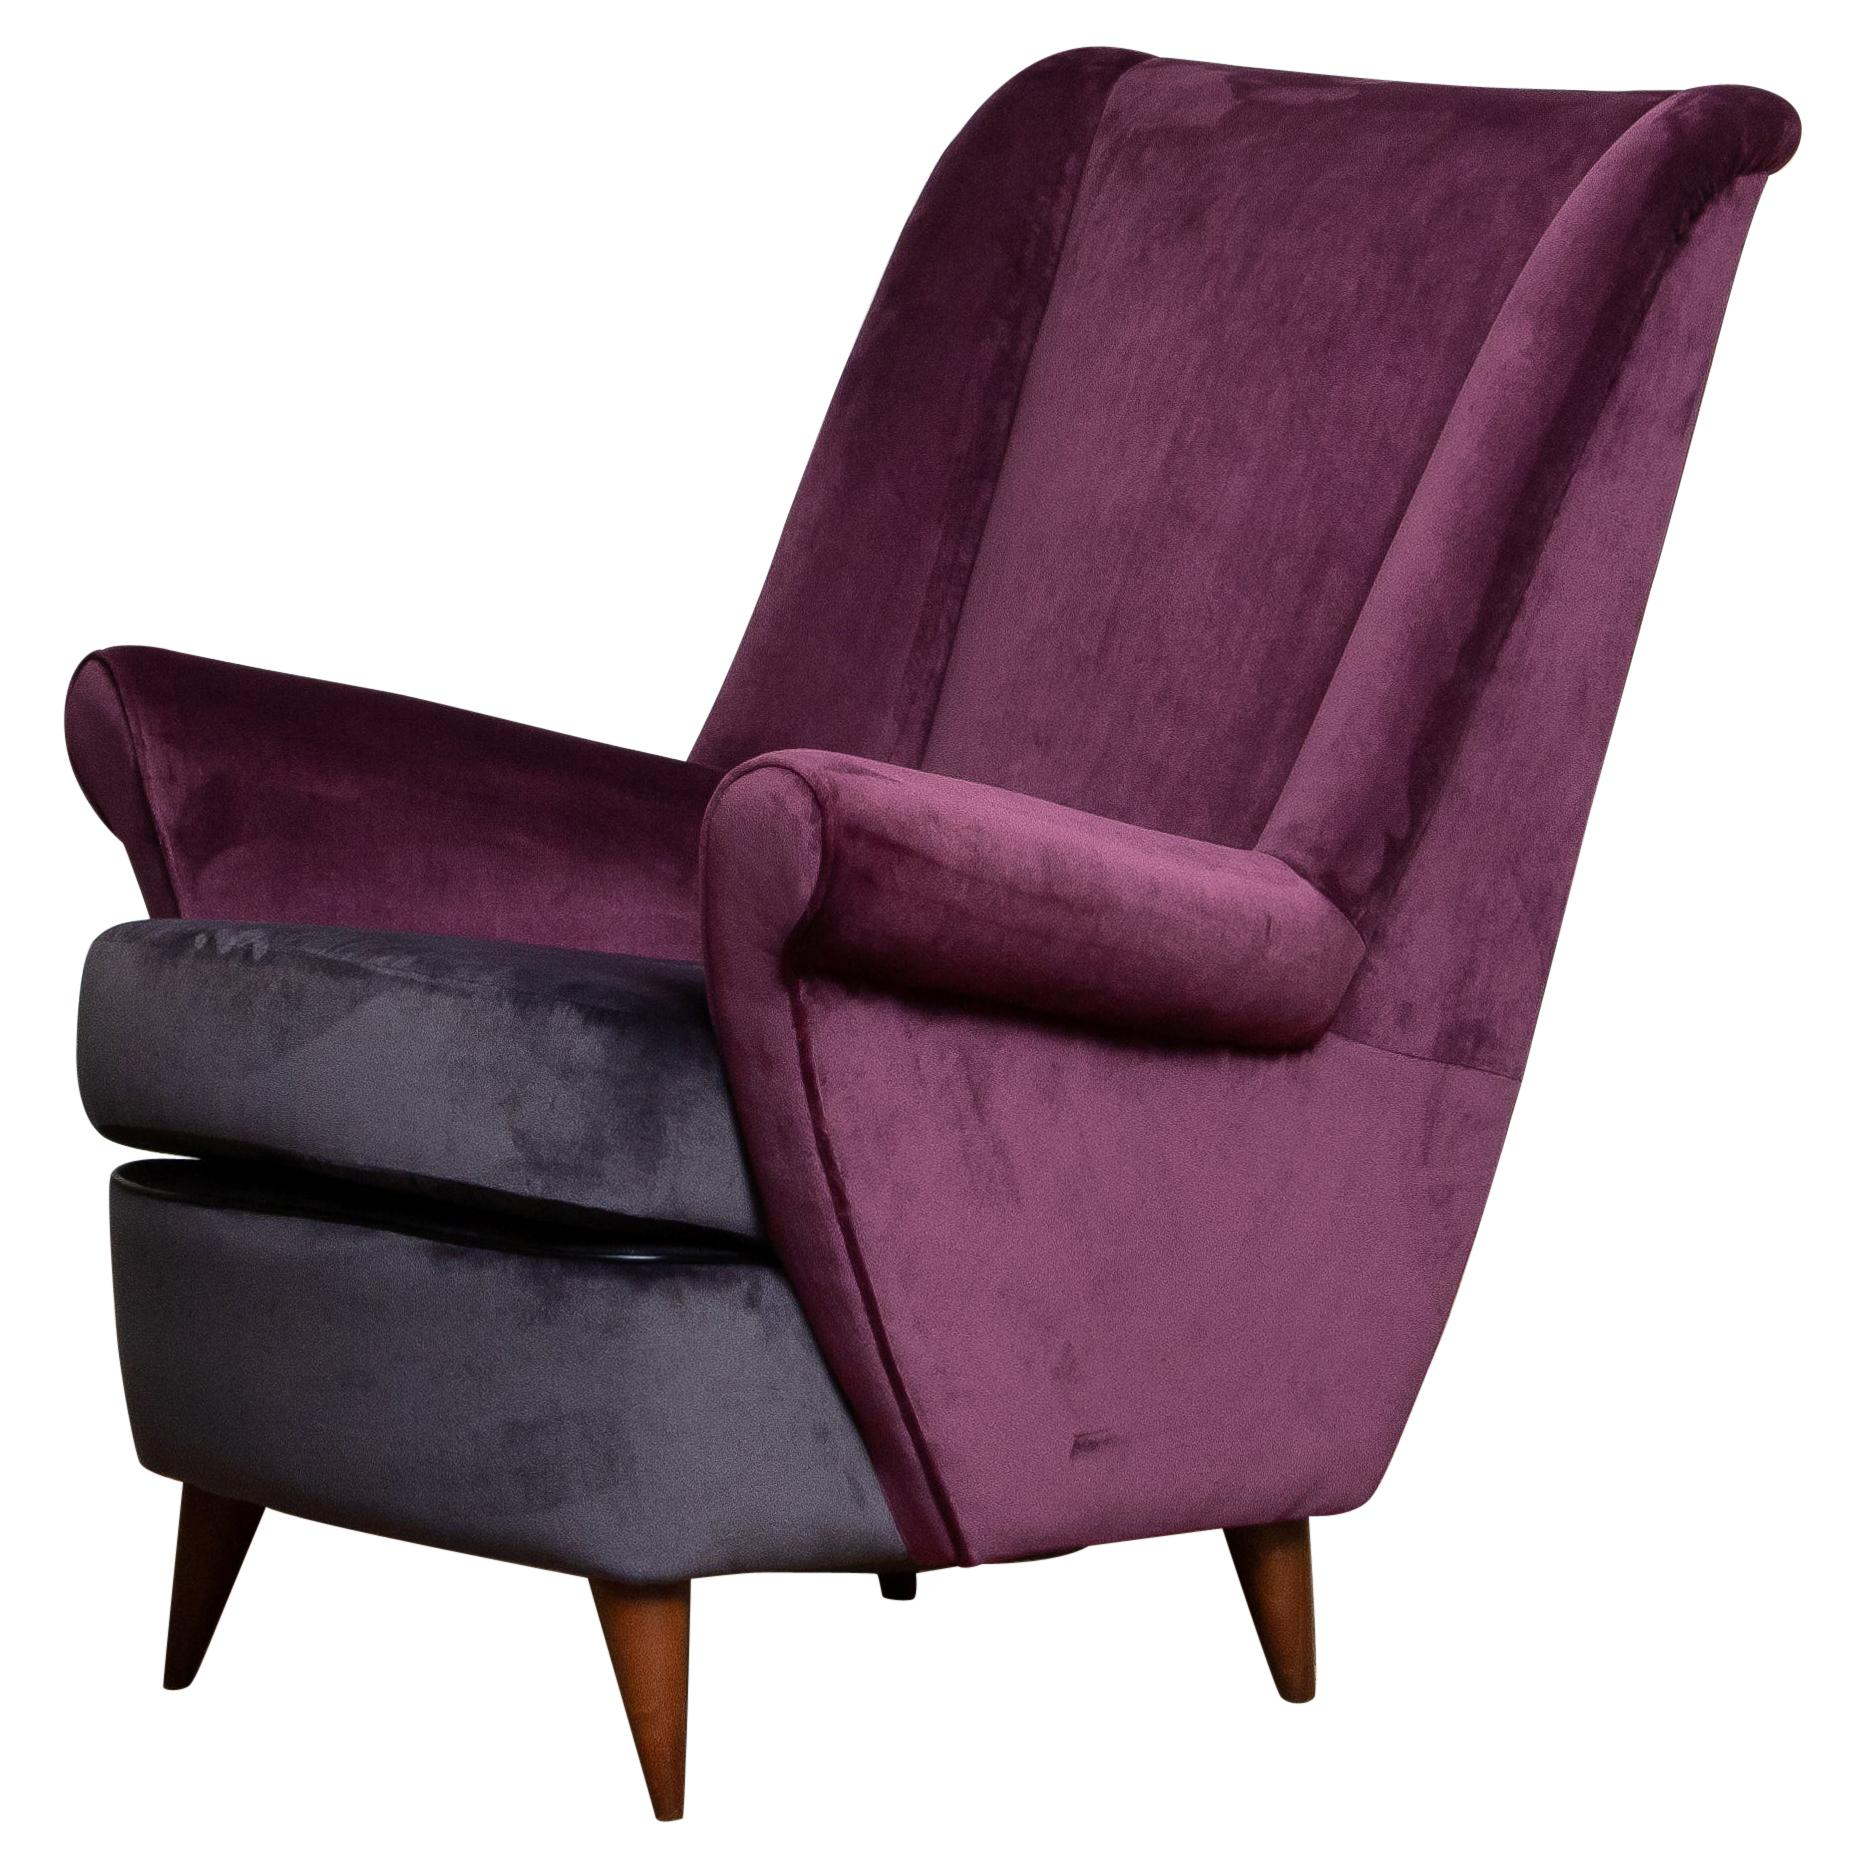 50's Lounge / Easy Chair in Magenta by Designed Gio Ponti for ISA Bergamo, Italy